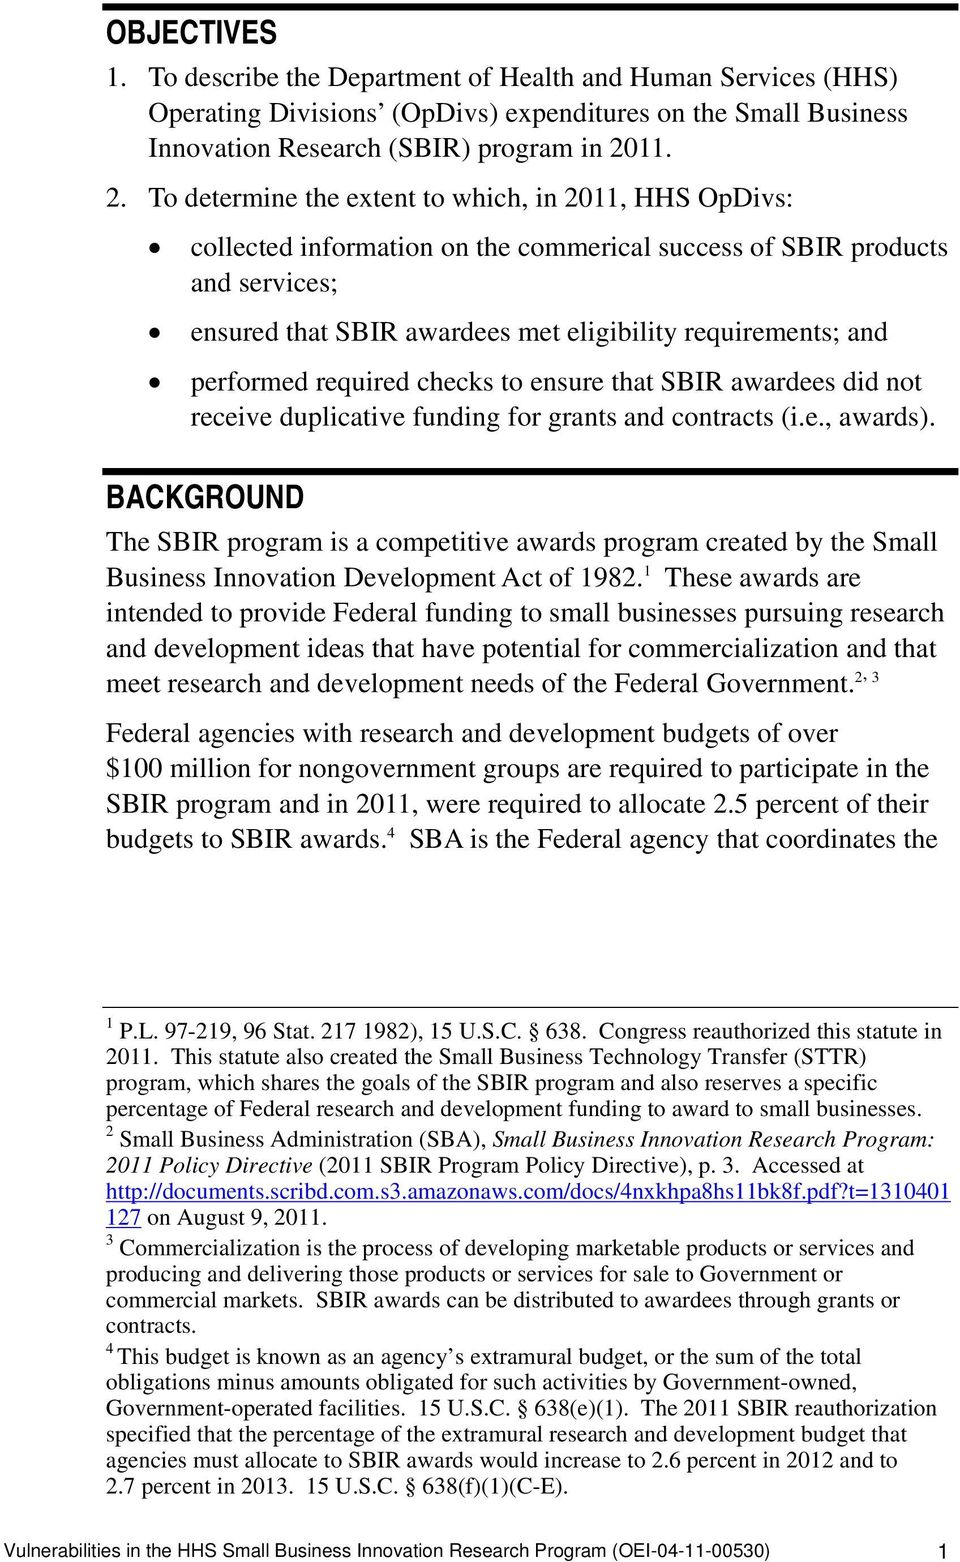 To determine the extent to which, in 2011, HHS OpDivs: collected information on the commerical success of SBIR products and services; ensured that SBIR awardees met eligibility requirements; and